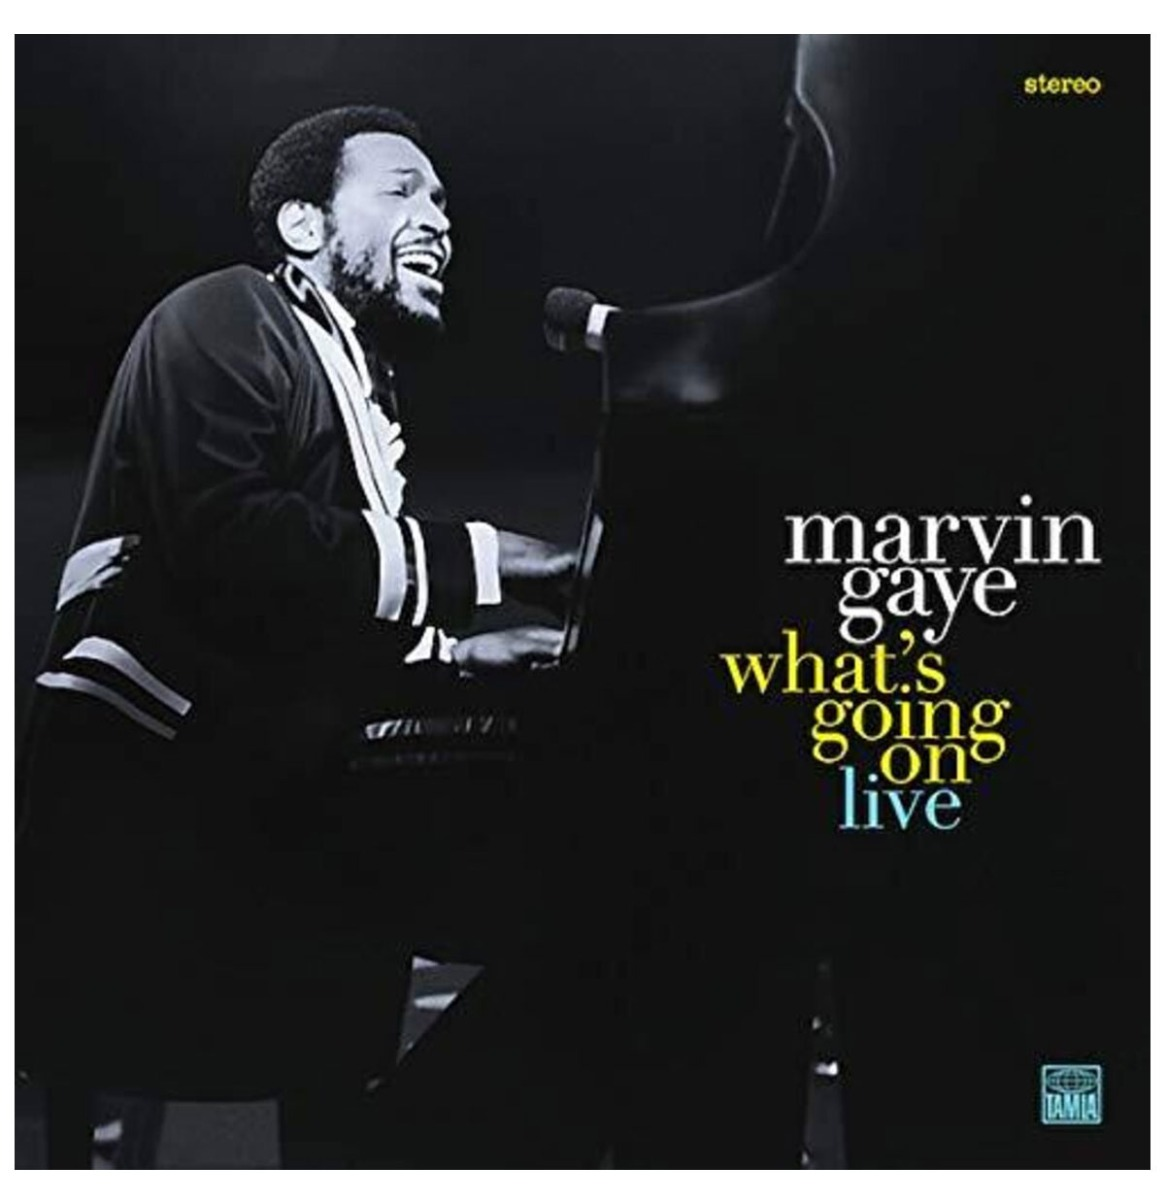 Marvin Gaye - What's Going On Live 2LP